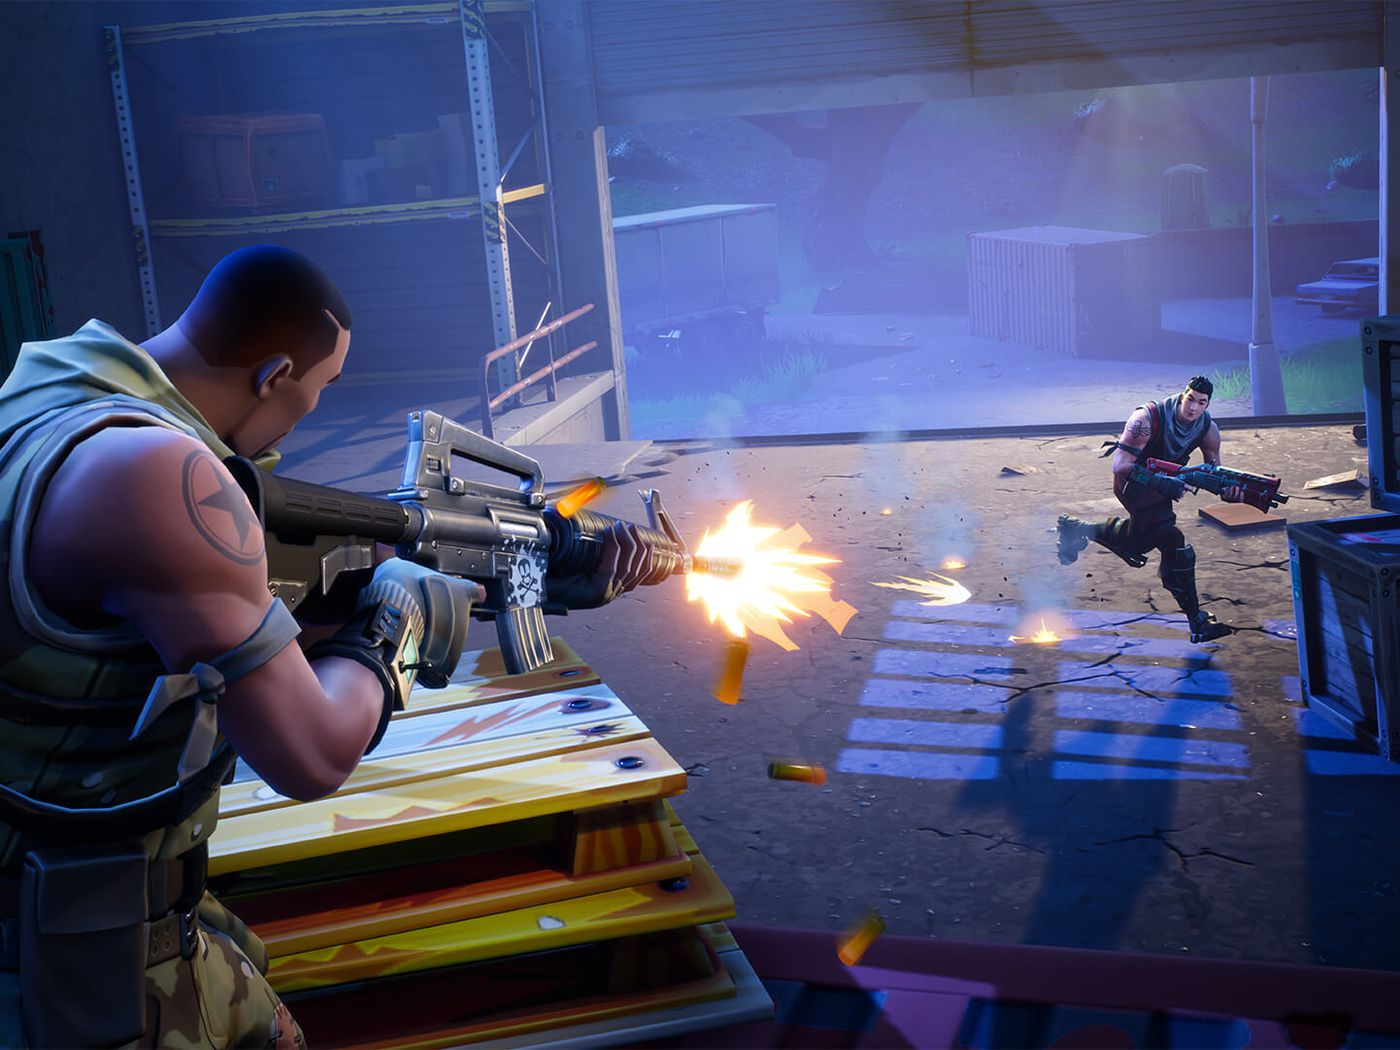 Fortnite Widget Ios 14 Updating To Ios 14 Could Delete Fortnite From Your Iphone Epic Warns Polygon